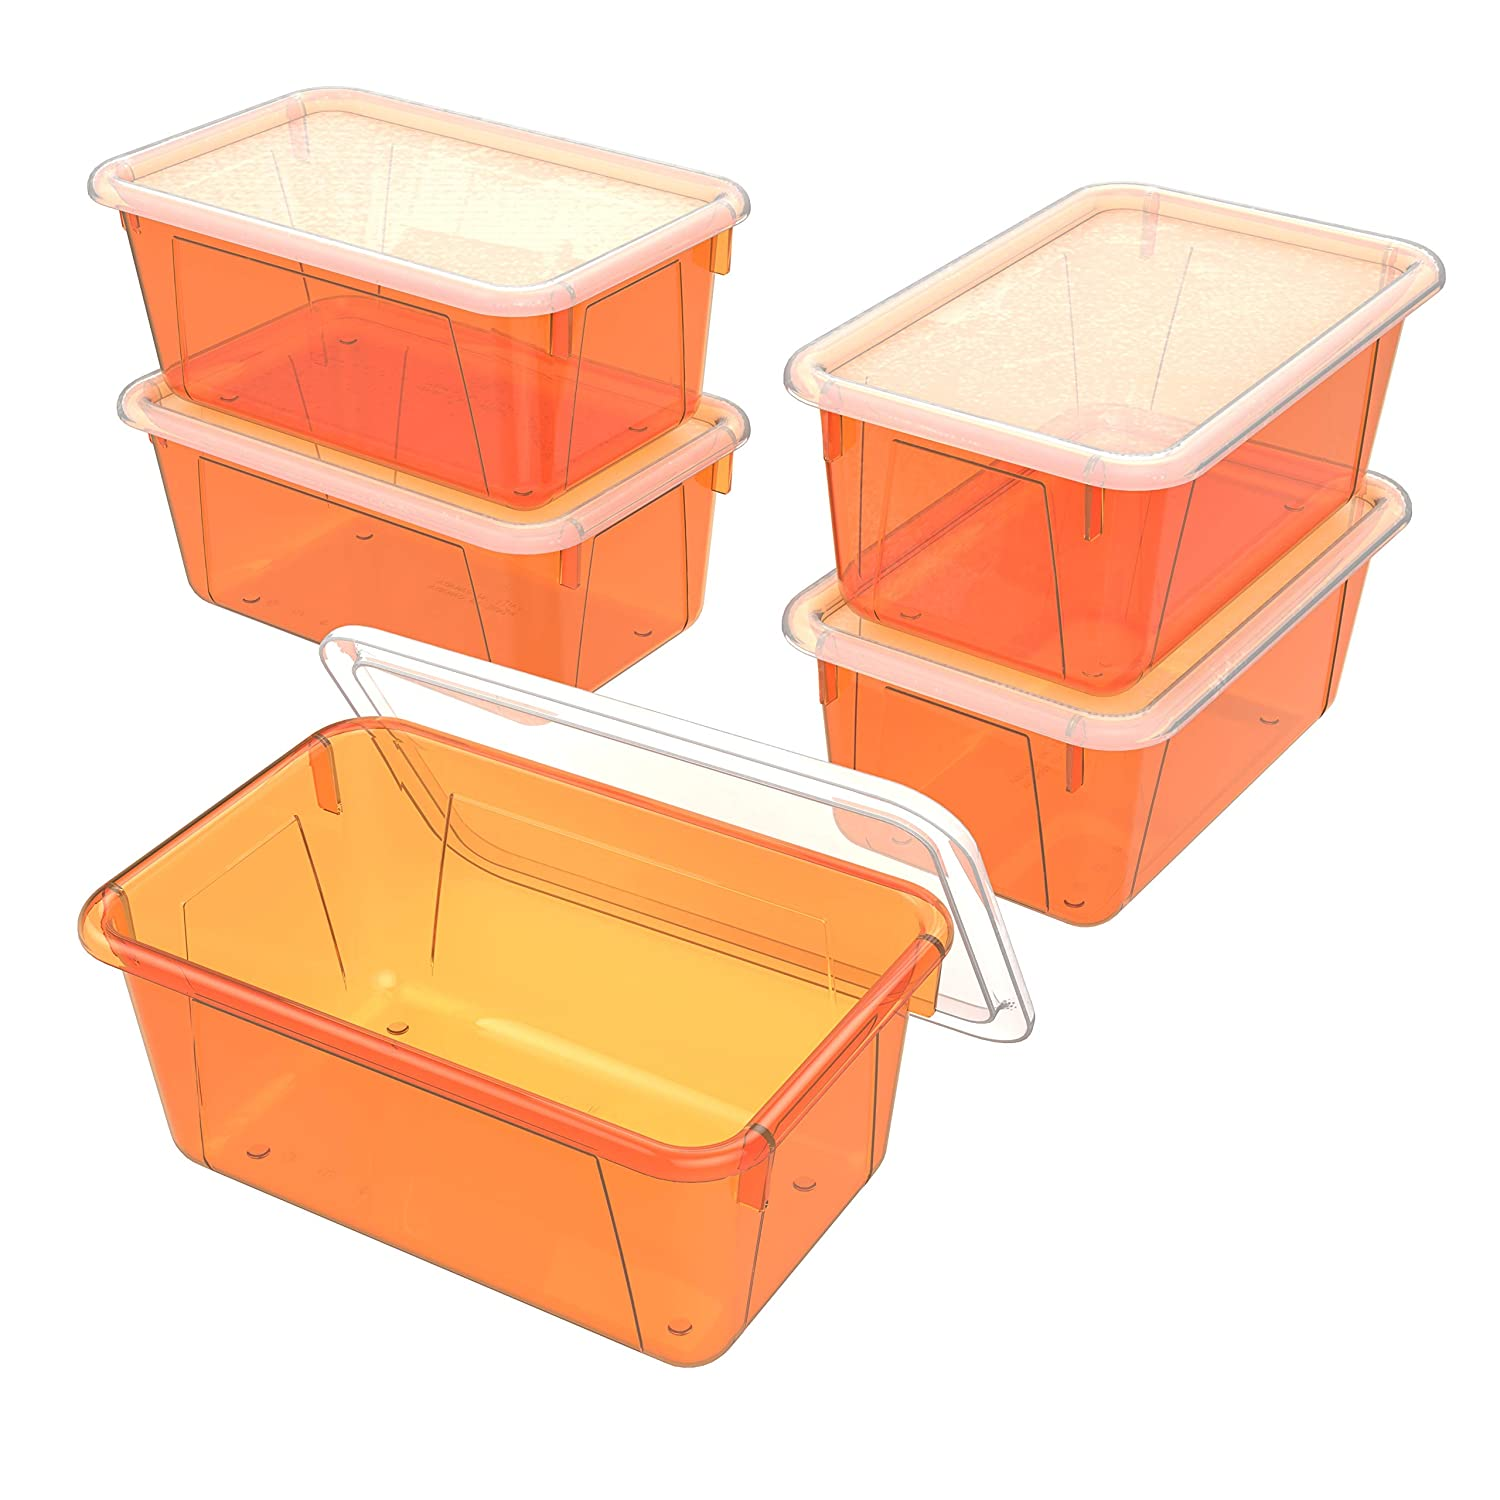 Storex Small Cubby Bin with Cover, 8 x 12 x 5 Inches, Tint Orange, 5-Pack (62485U05C)